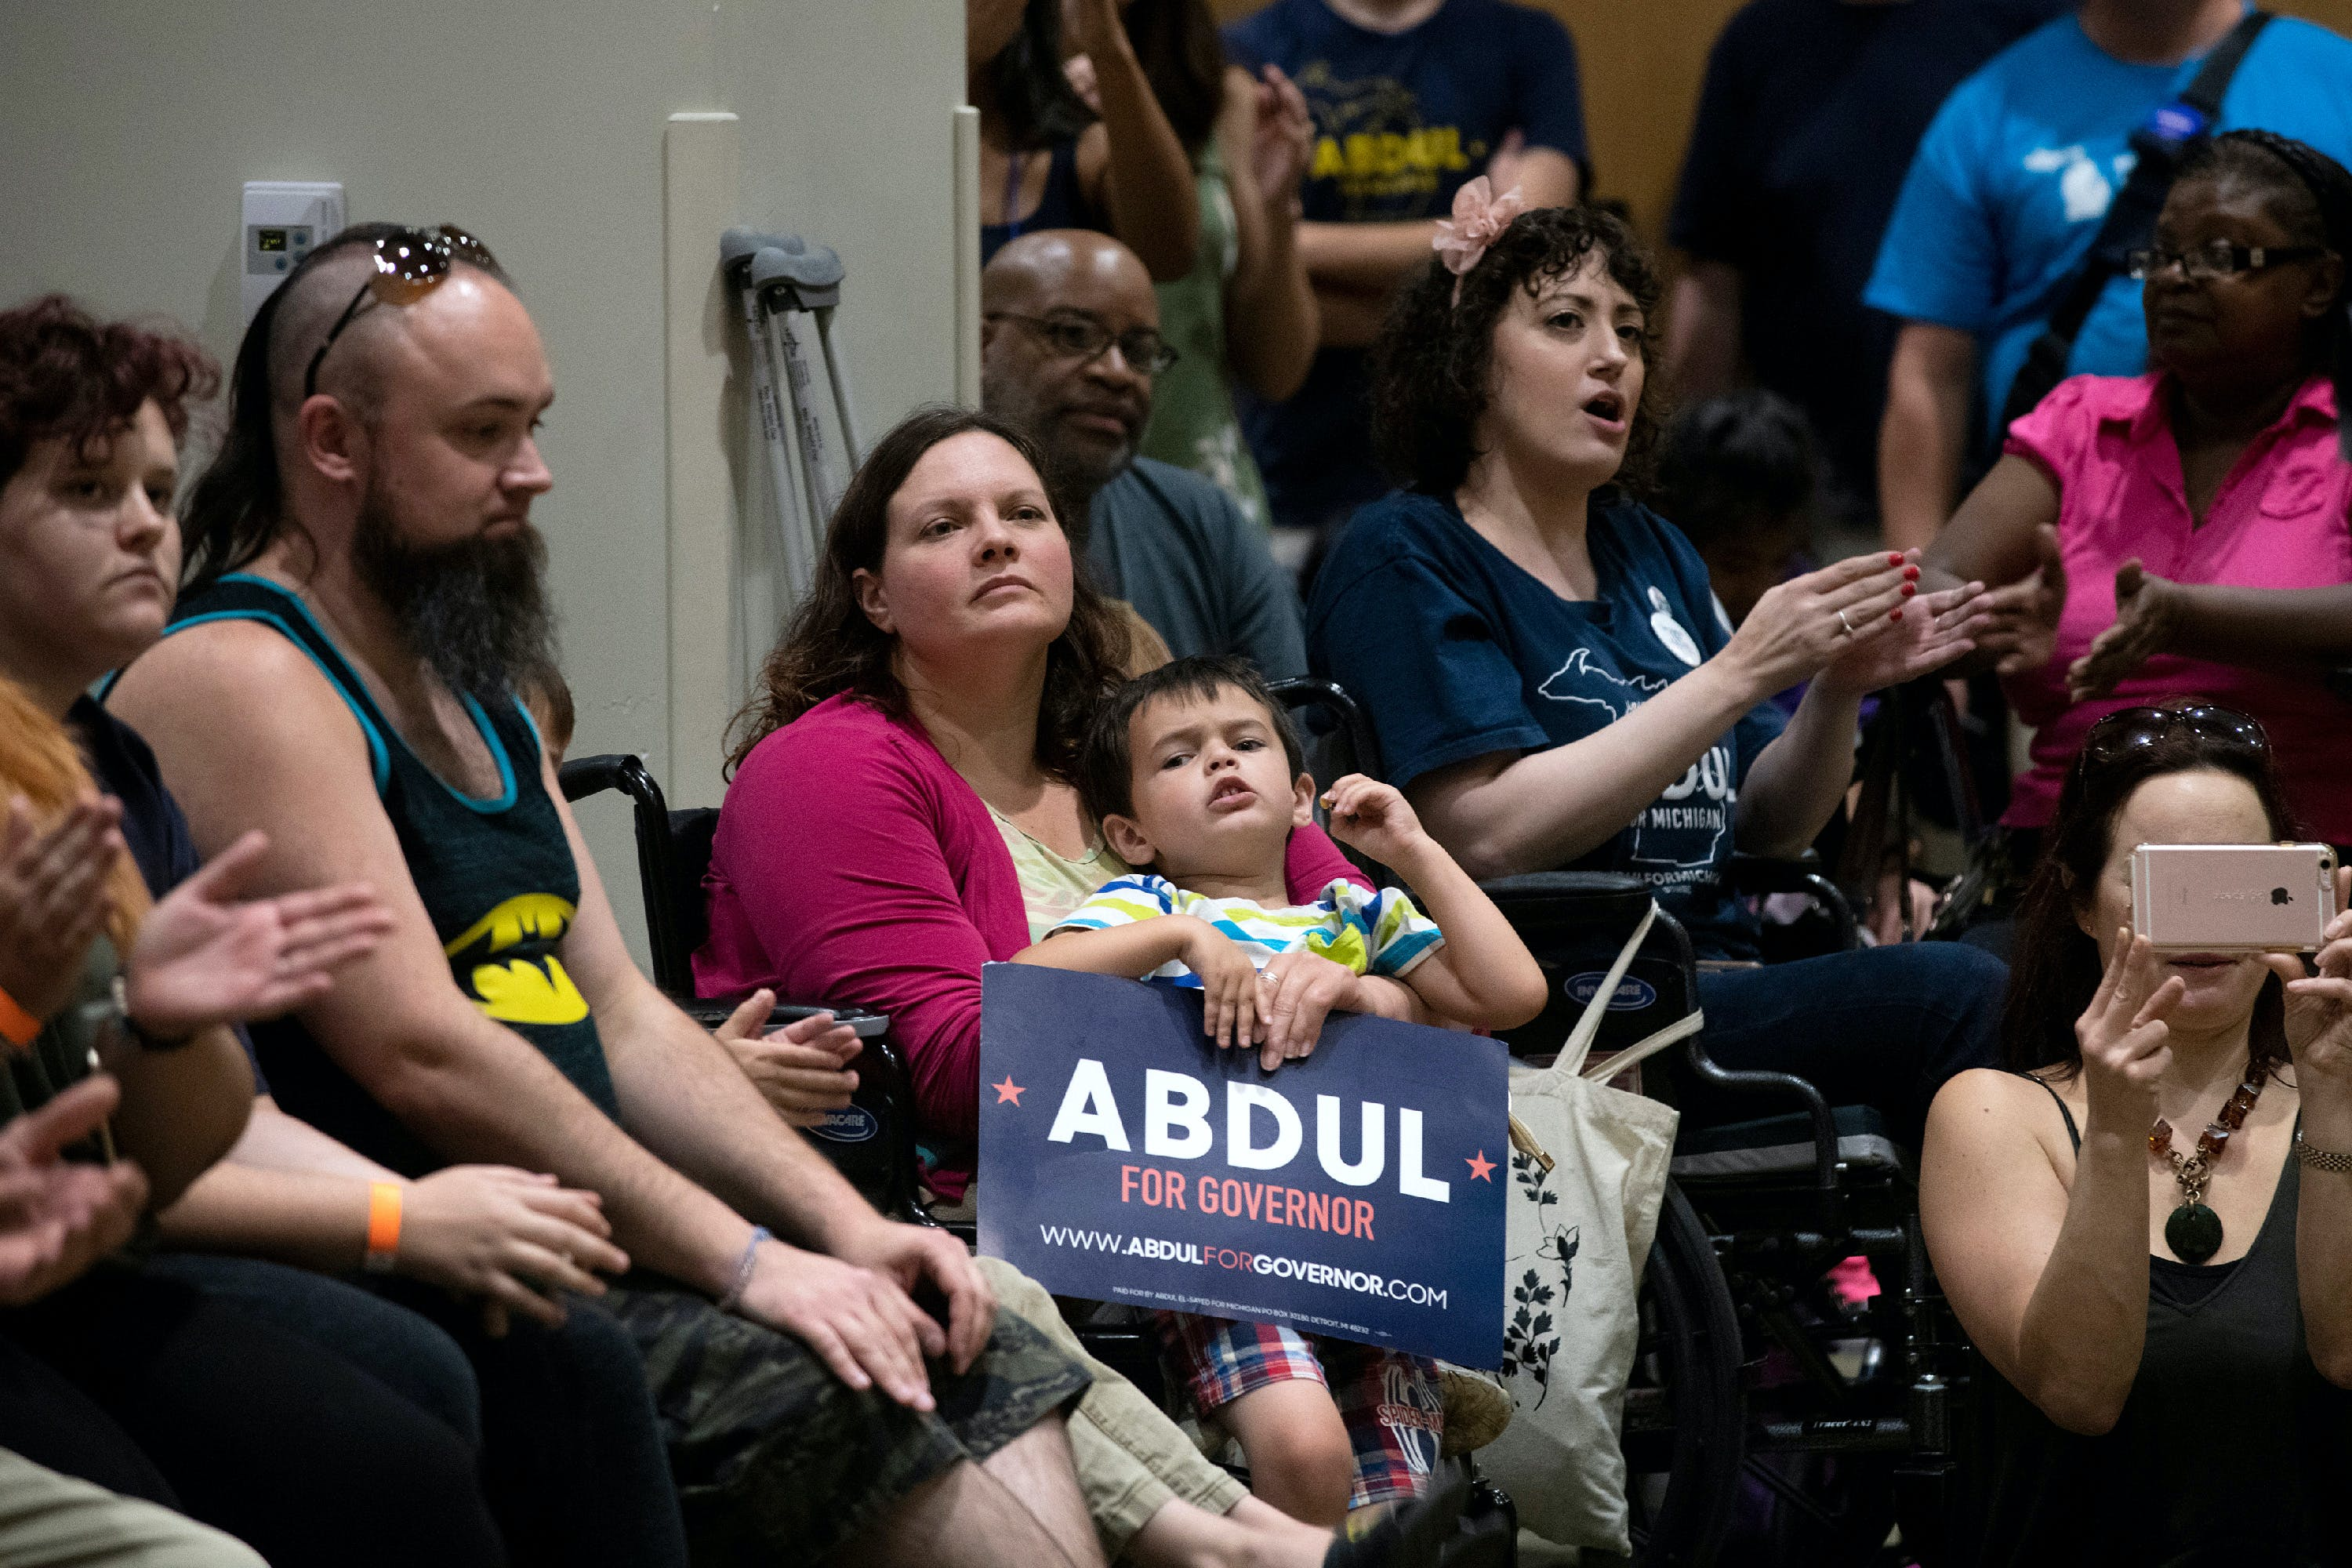 Supporters listen as Michigan Democratic Gubernatorial candidate Abdul El-Sayed speaks during his campaign rally with Alexandria Ocasio-Cortez at the Wayne State University Student Center in Detroit, Michigan on Saturday, July 28, 2018. (Rachel Woolf for The Intercept)